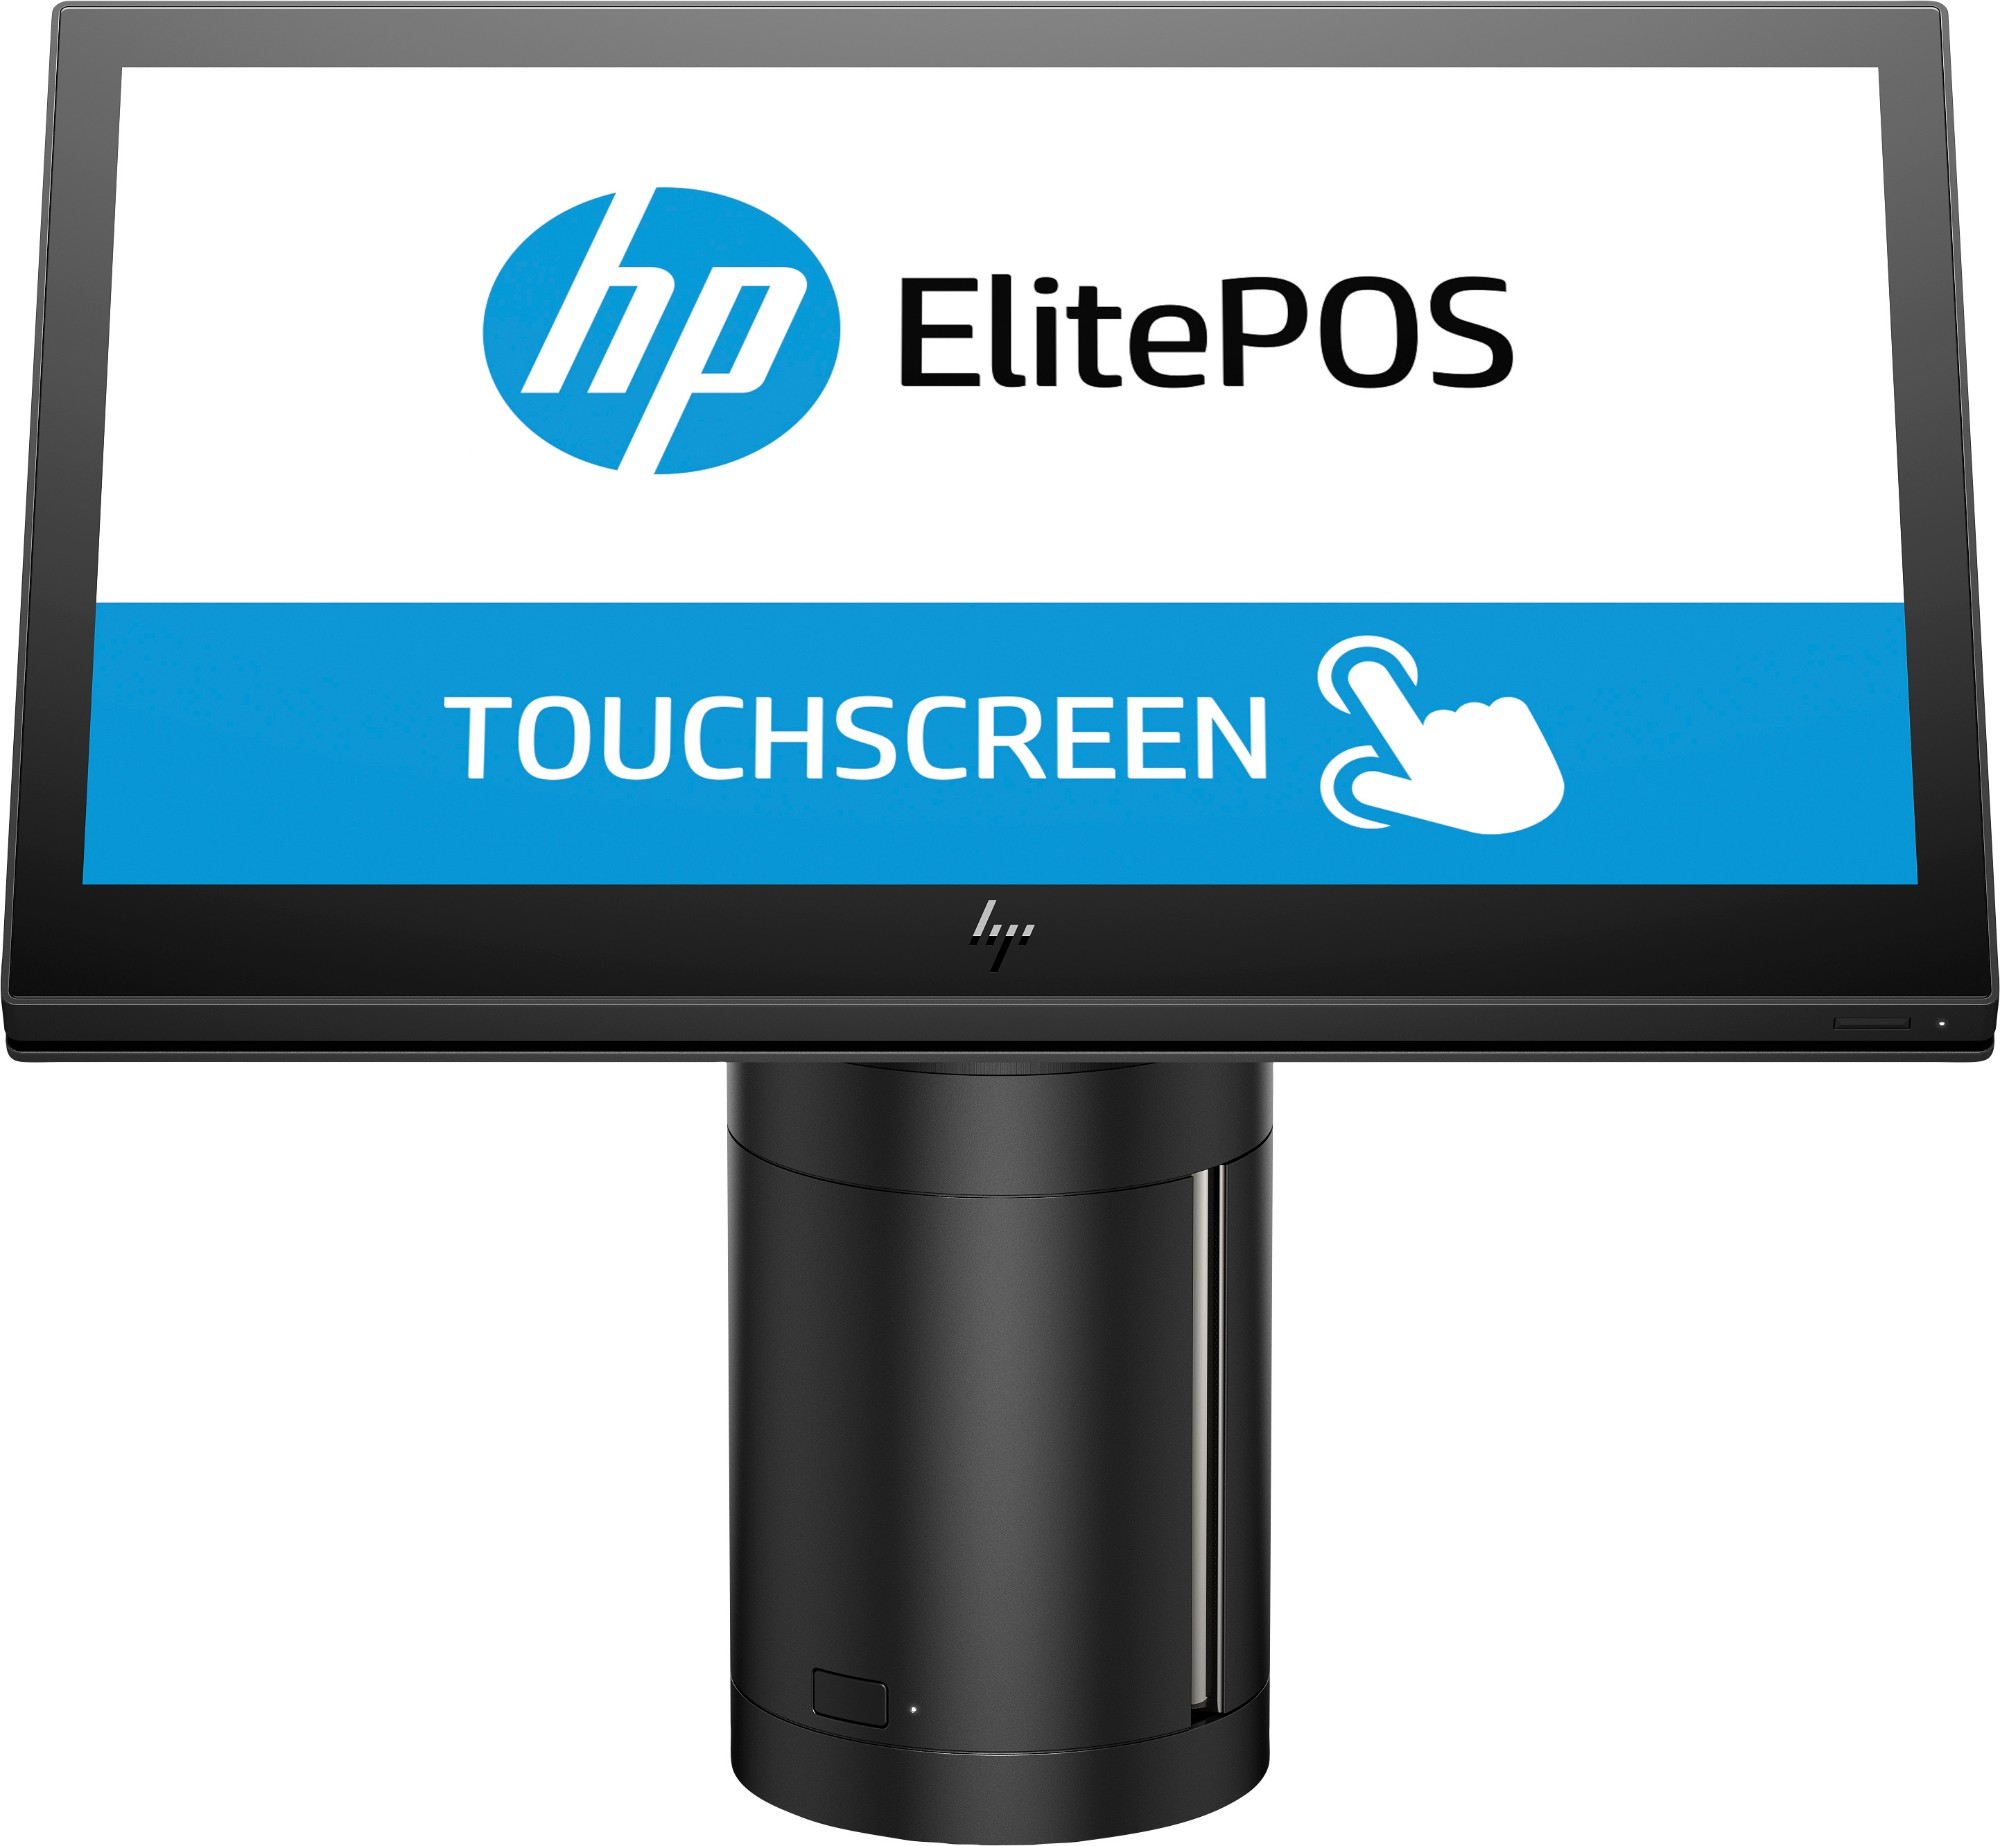 HP ElitePOS G1 Retail System Model 141 - 3965U - 4GB RAM - 128GB SSD - Win10 IoT Ent Uk